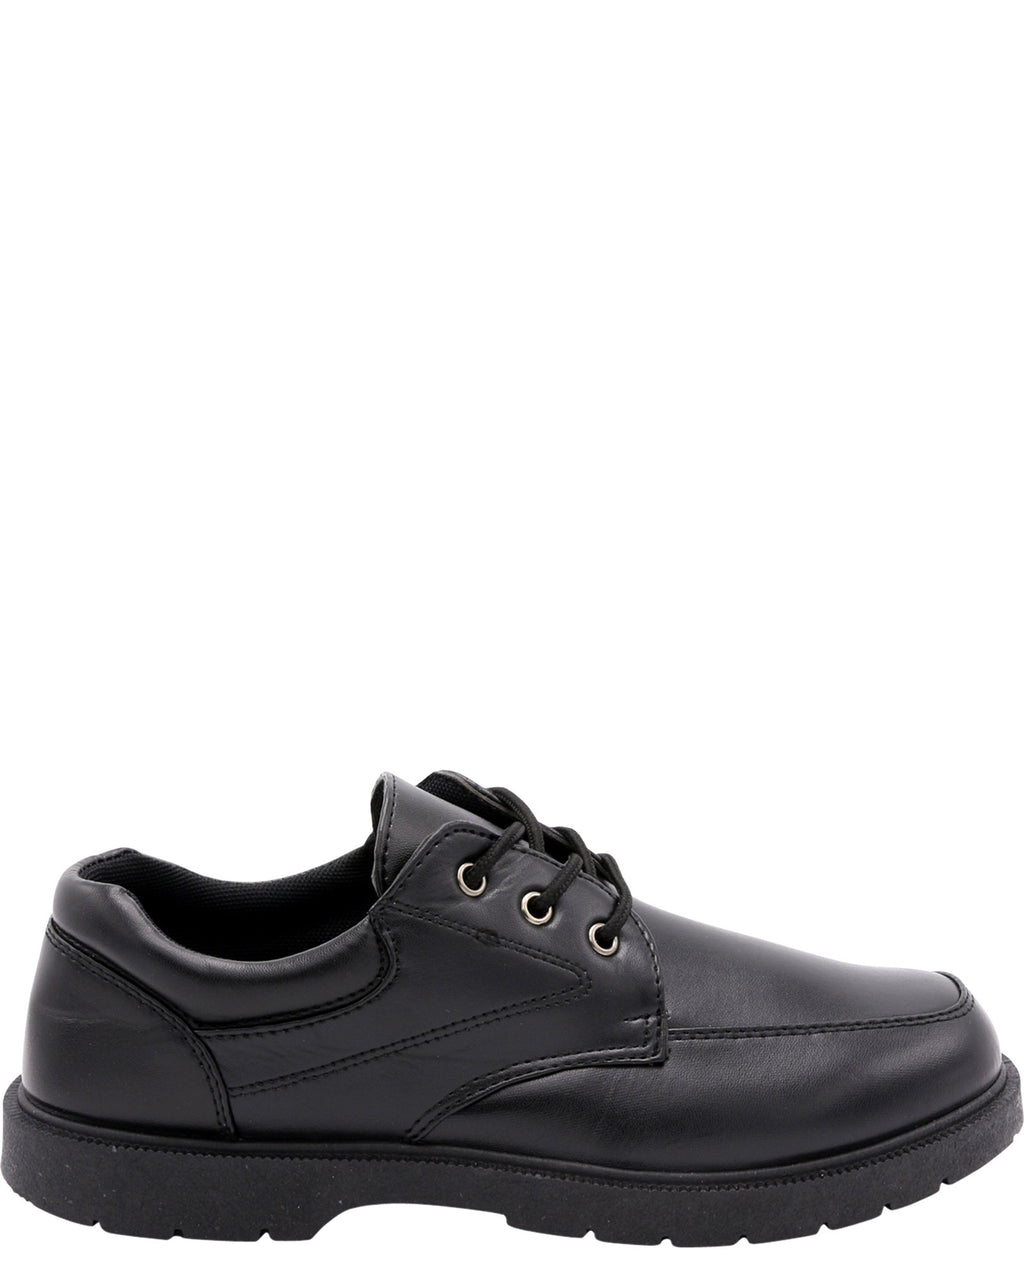 Danuccelli - Boy's Lace-Up Moc Shoes (Preschool/Grade School) - V.I.M. - 1